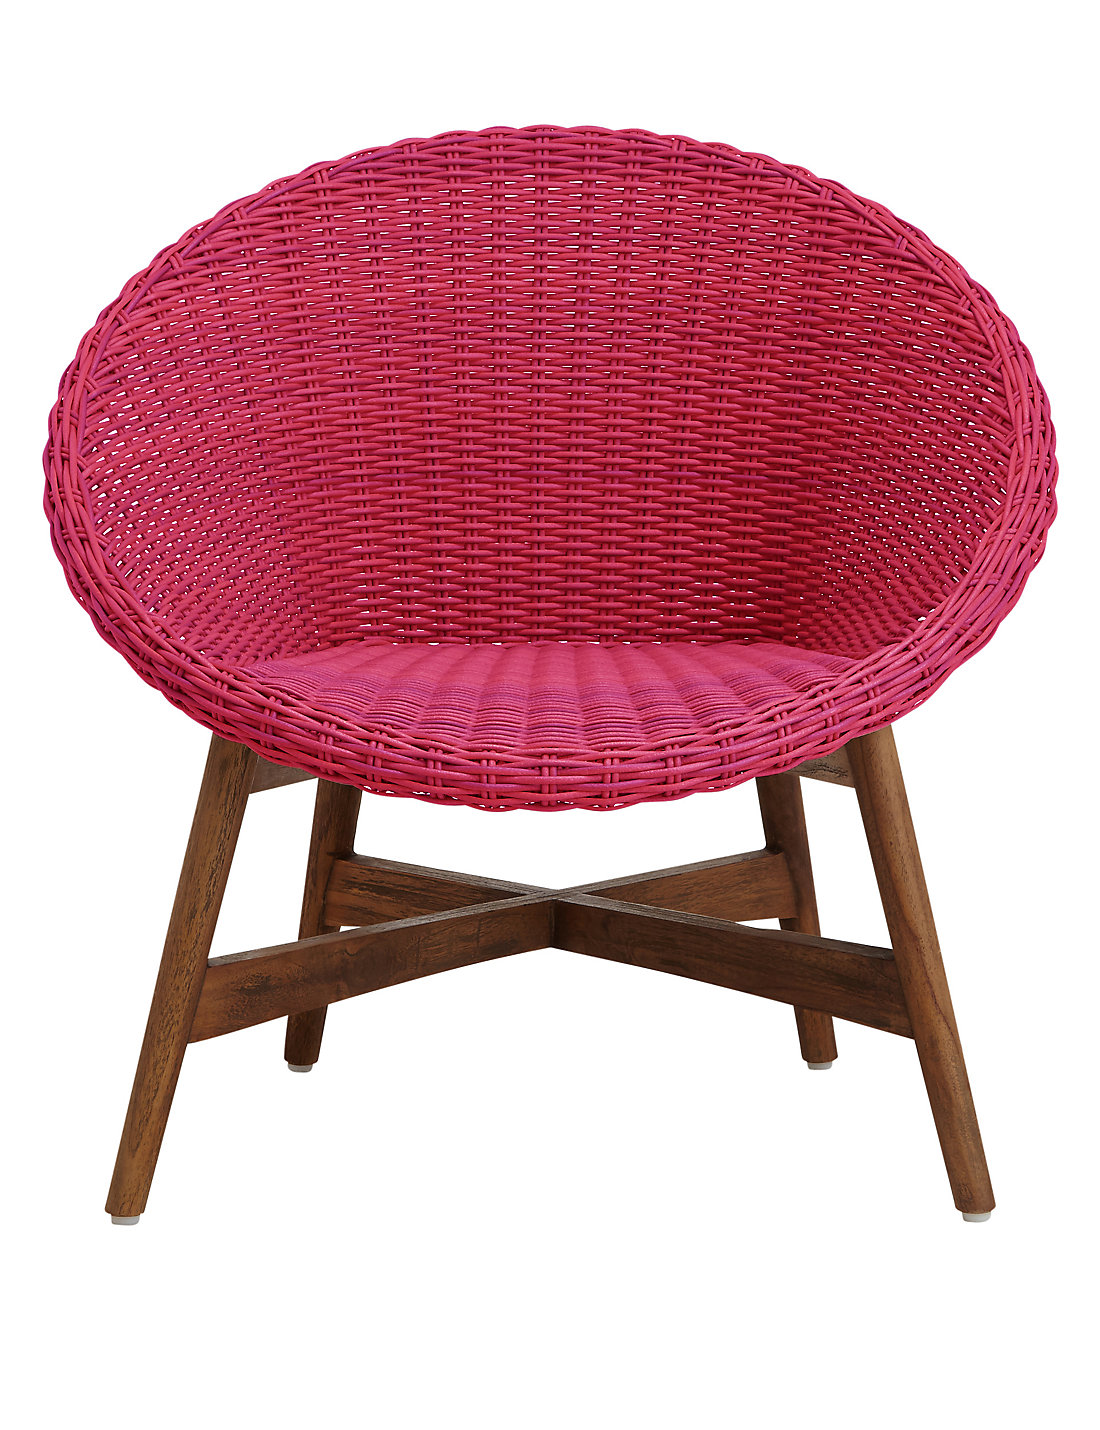 Capri Chair   Magenta. Capri Chair   Magenta   M S